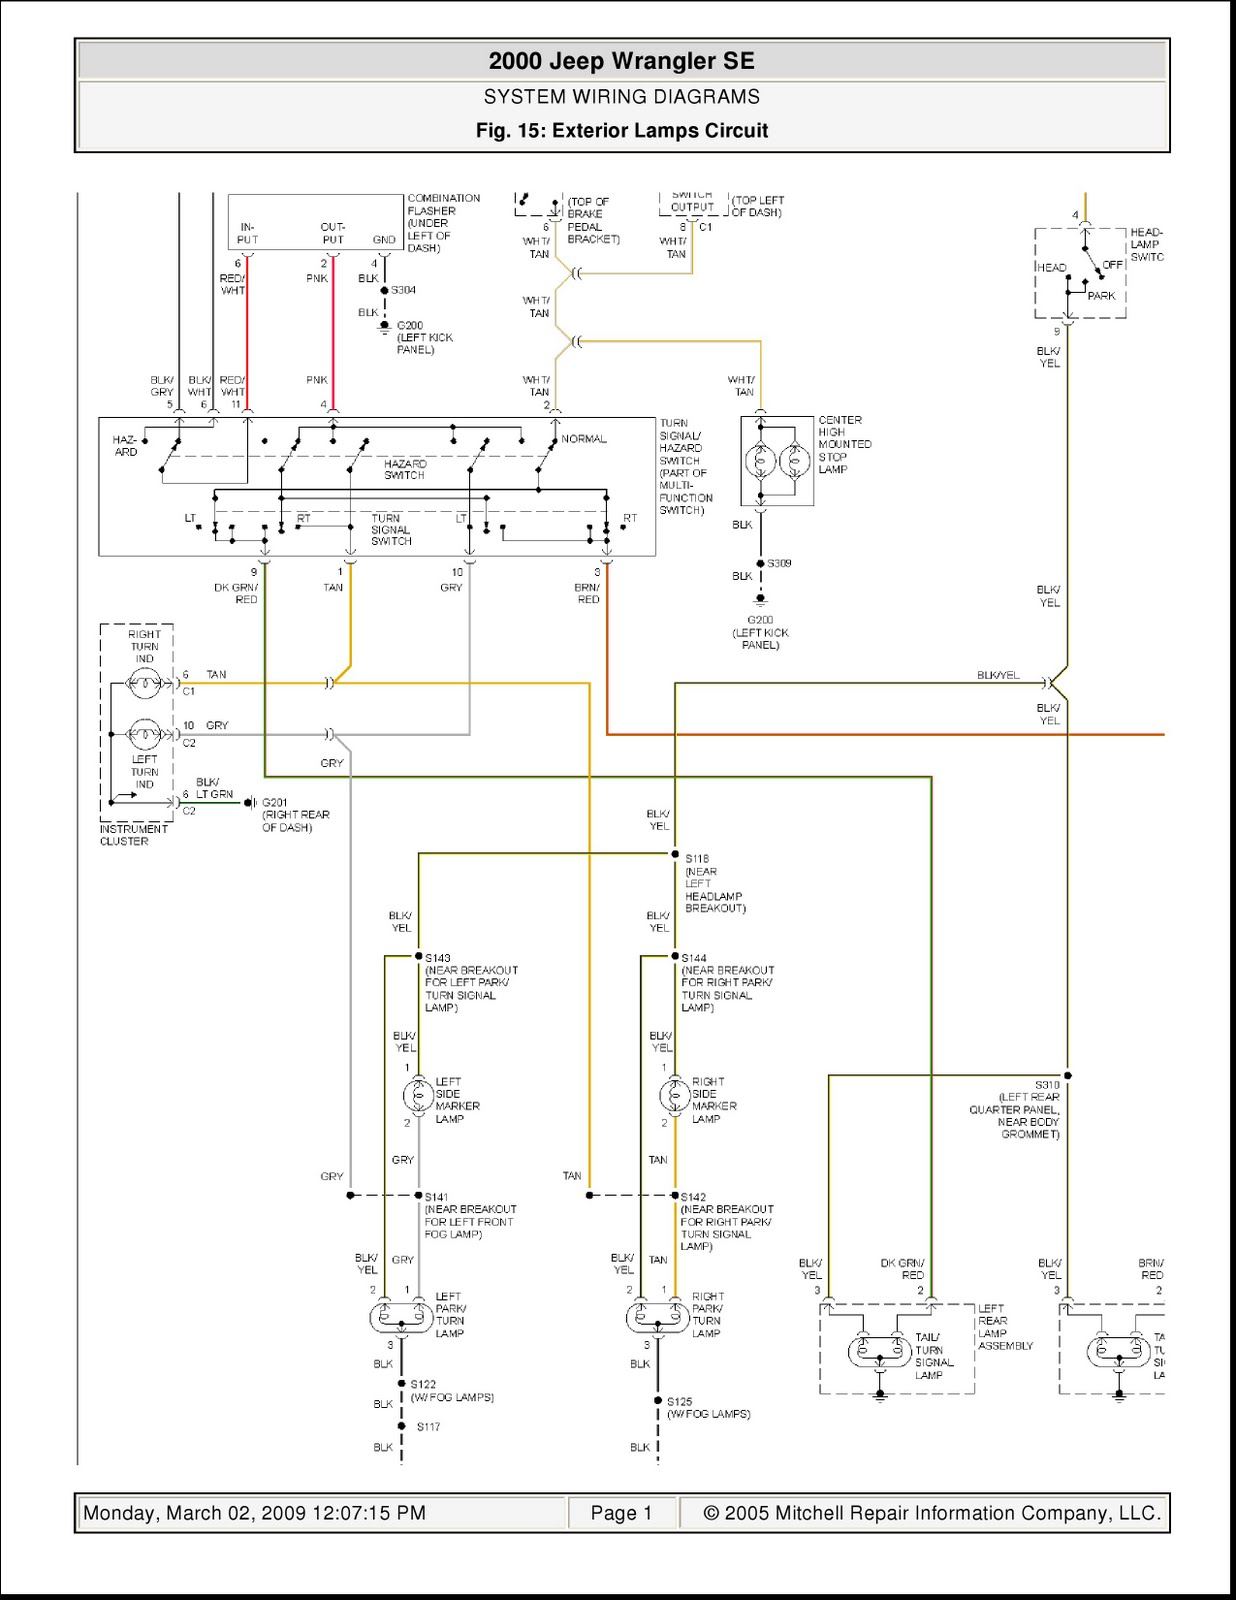 2003 Jeep Wrangler Wiring Diagram from 3.bp.blogspot.com